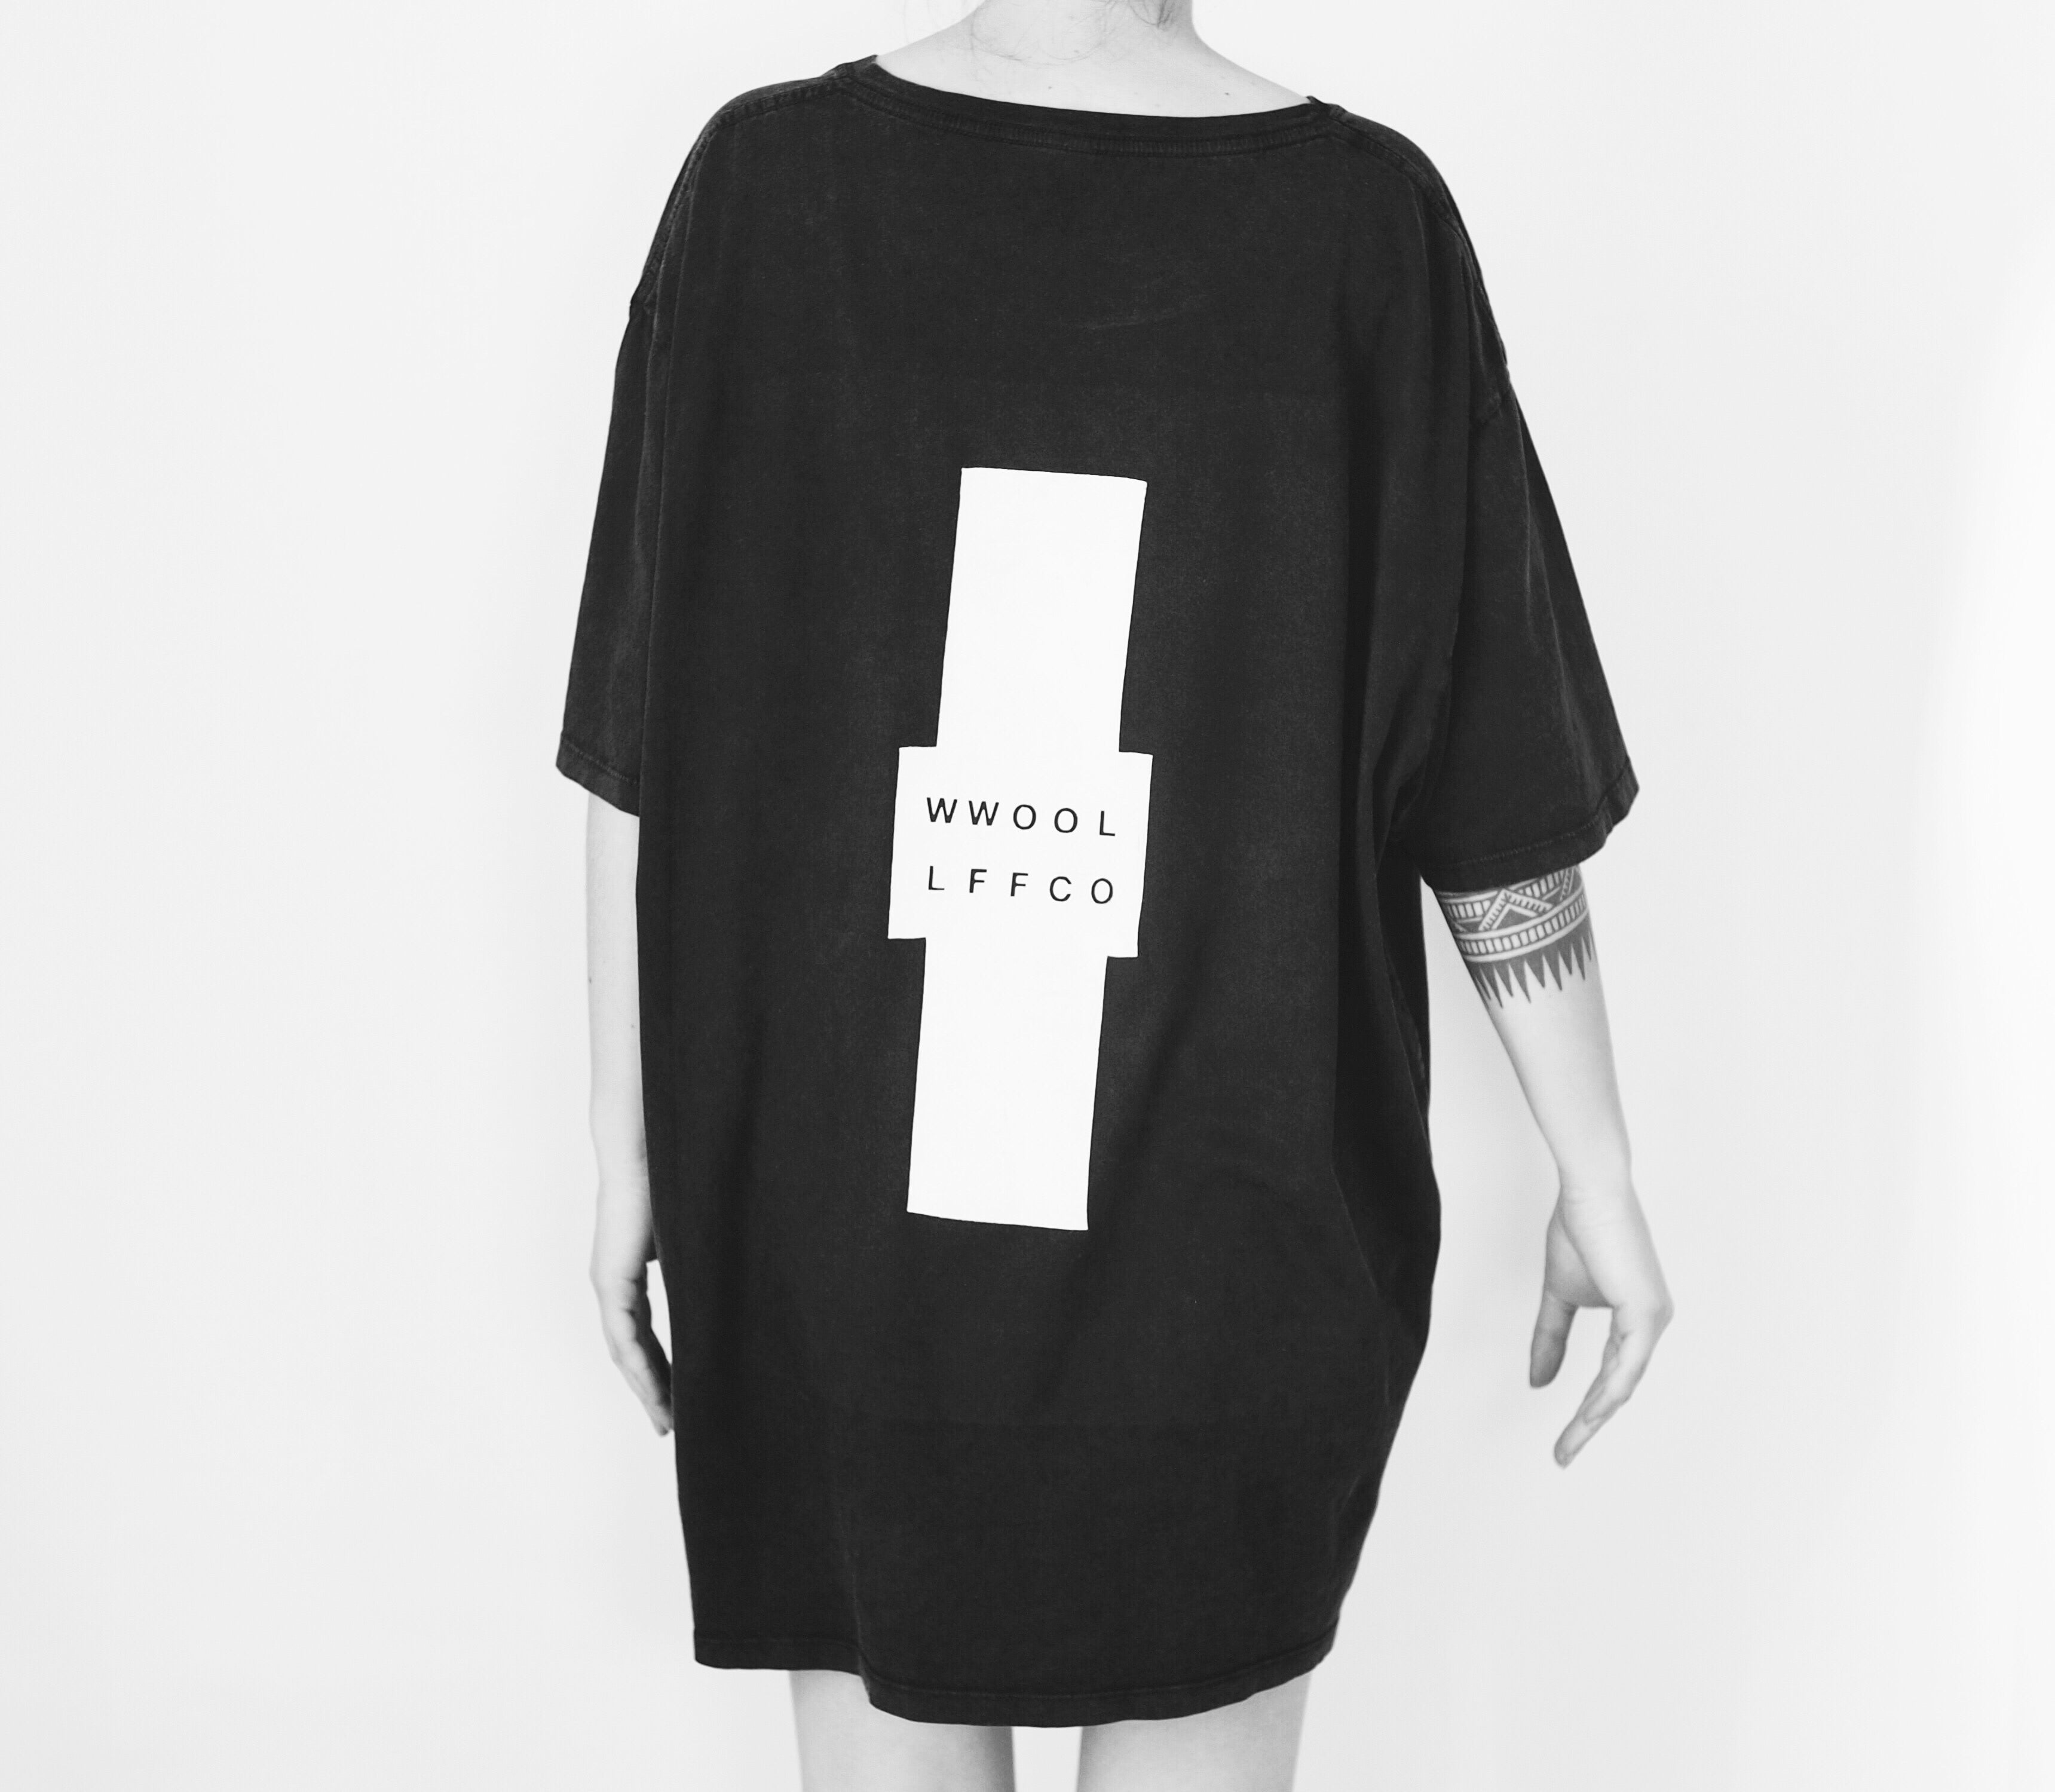 WWOOLLFF Cross | Oversized Stone Washed Black Tee